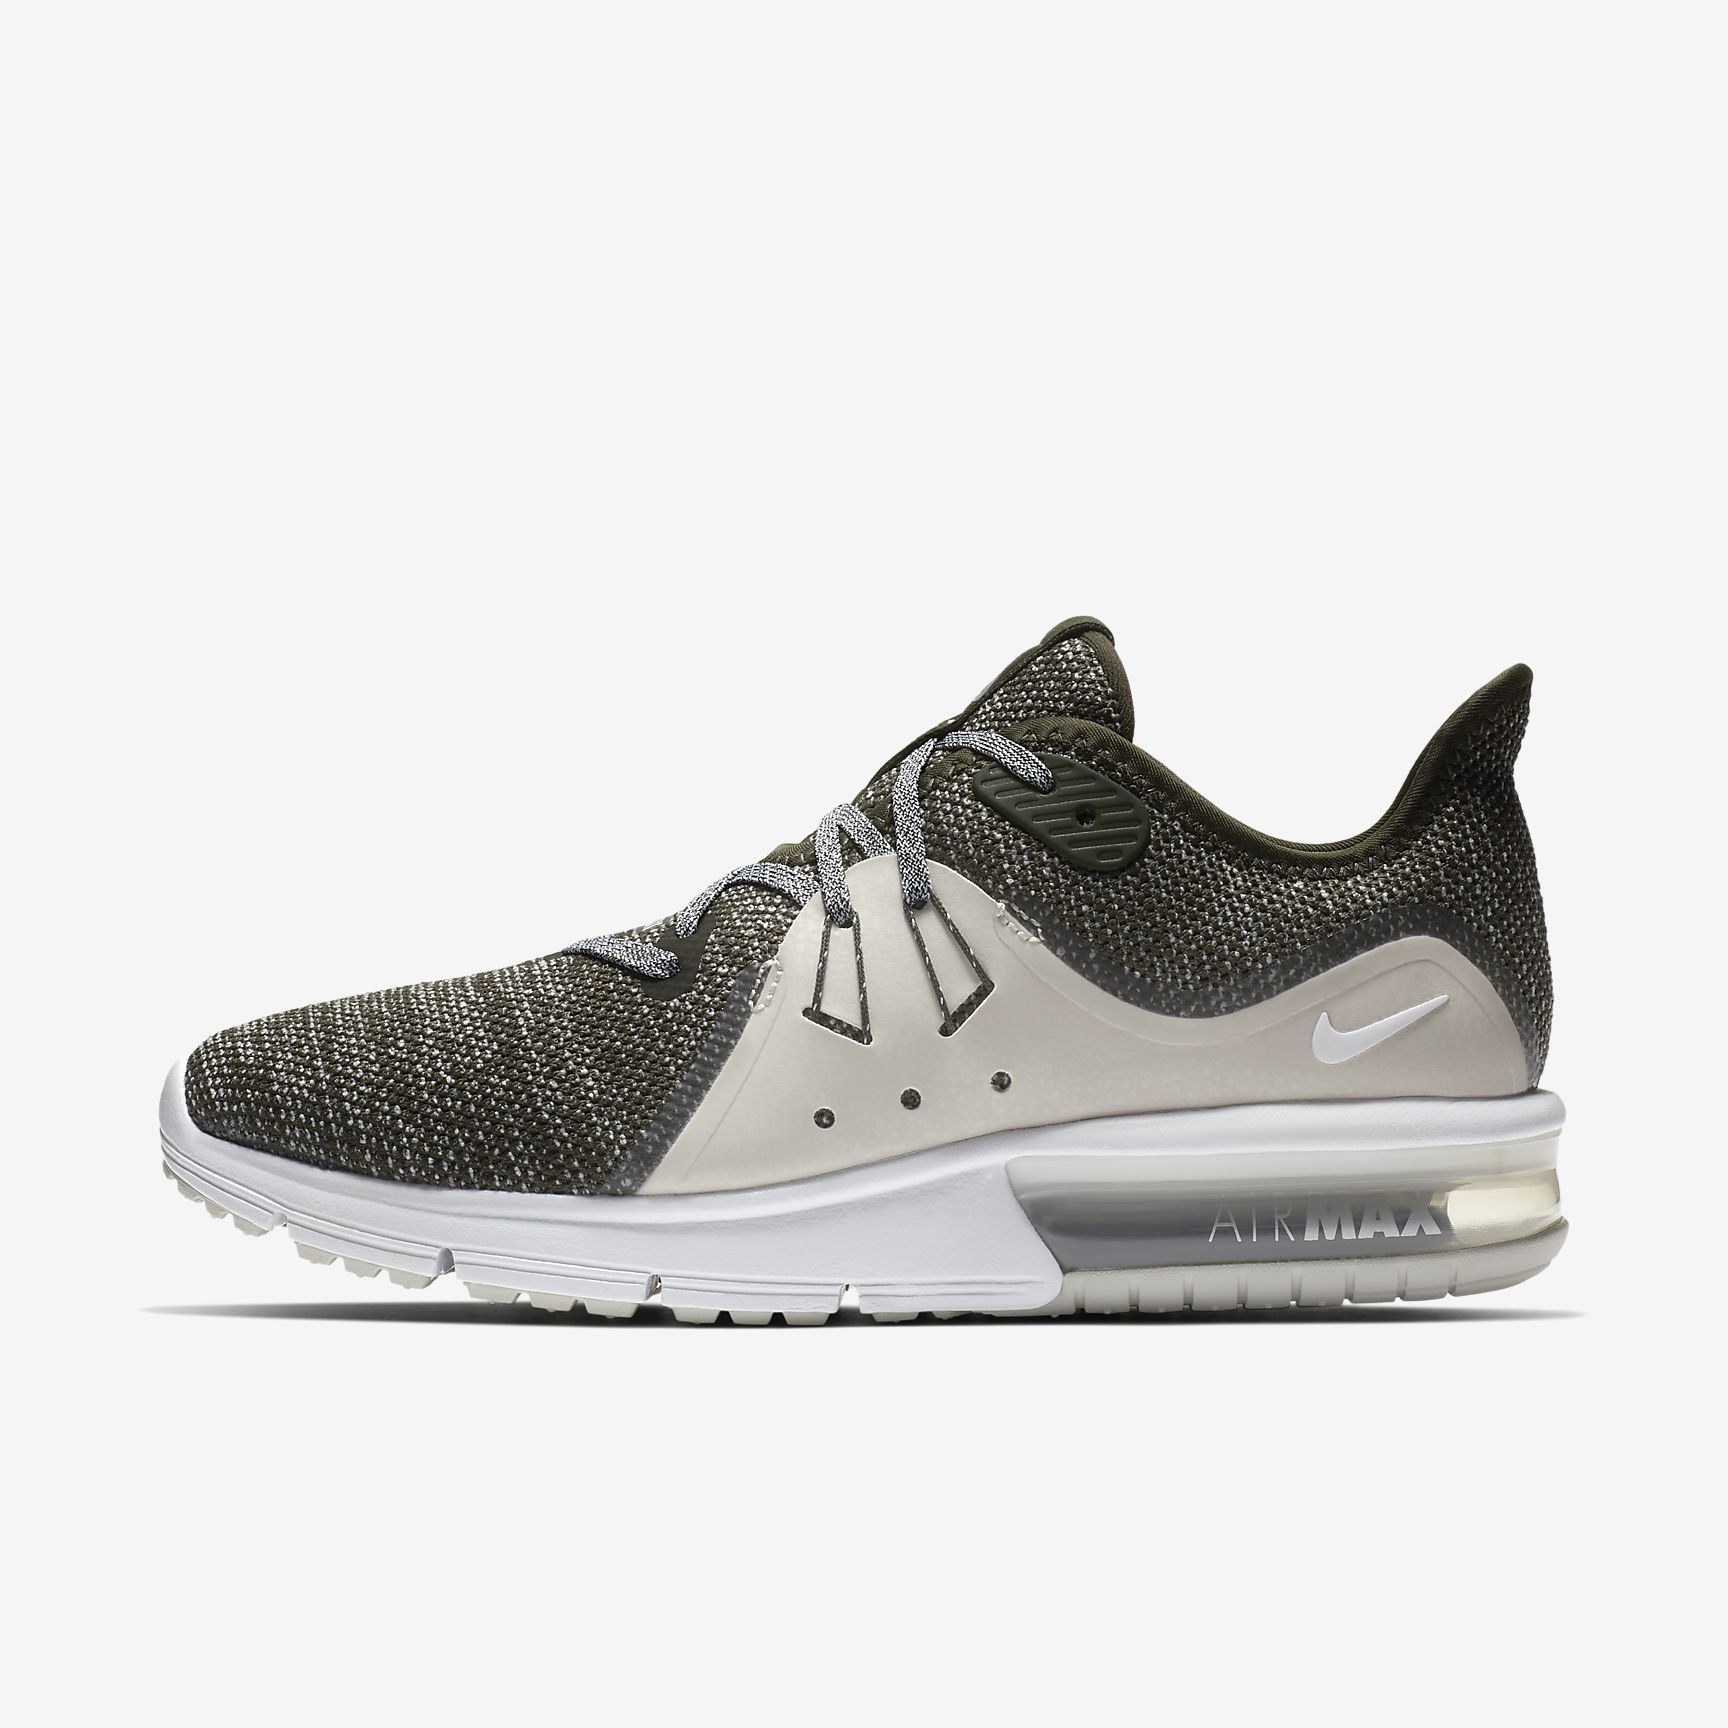 Air Max Sequent 3 Women's Shoe | sam style | Calzas, Calzado